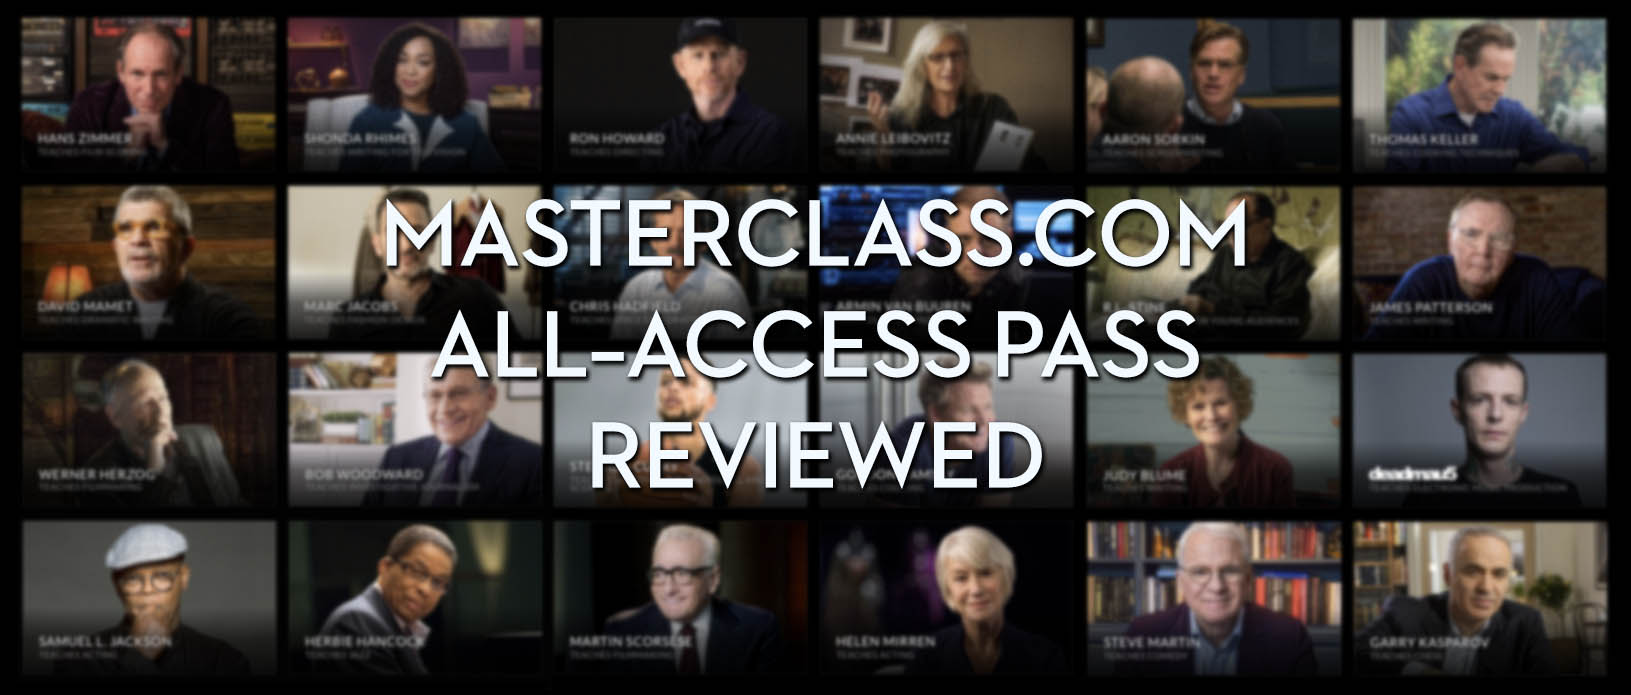 Msaterclass.com All Access Pass Review